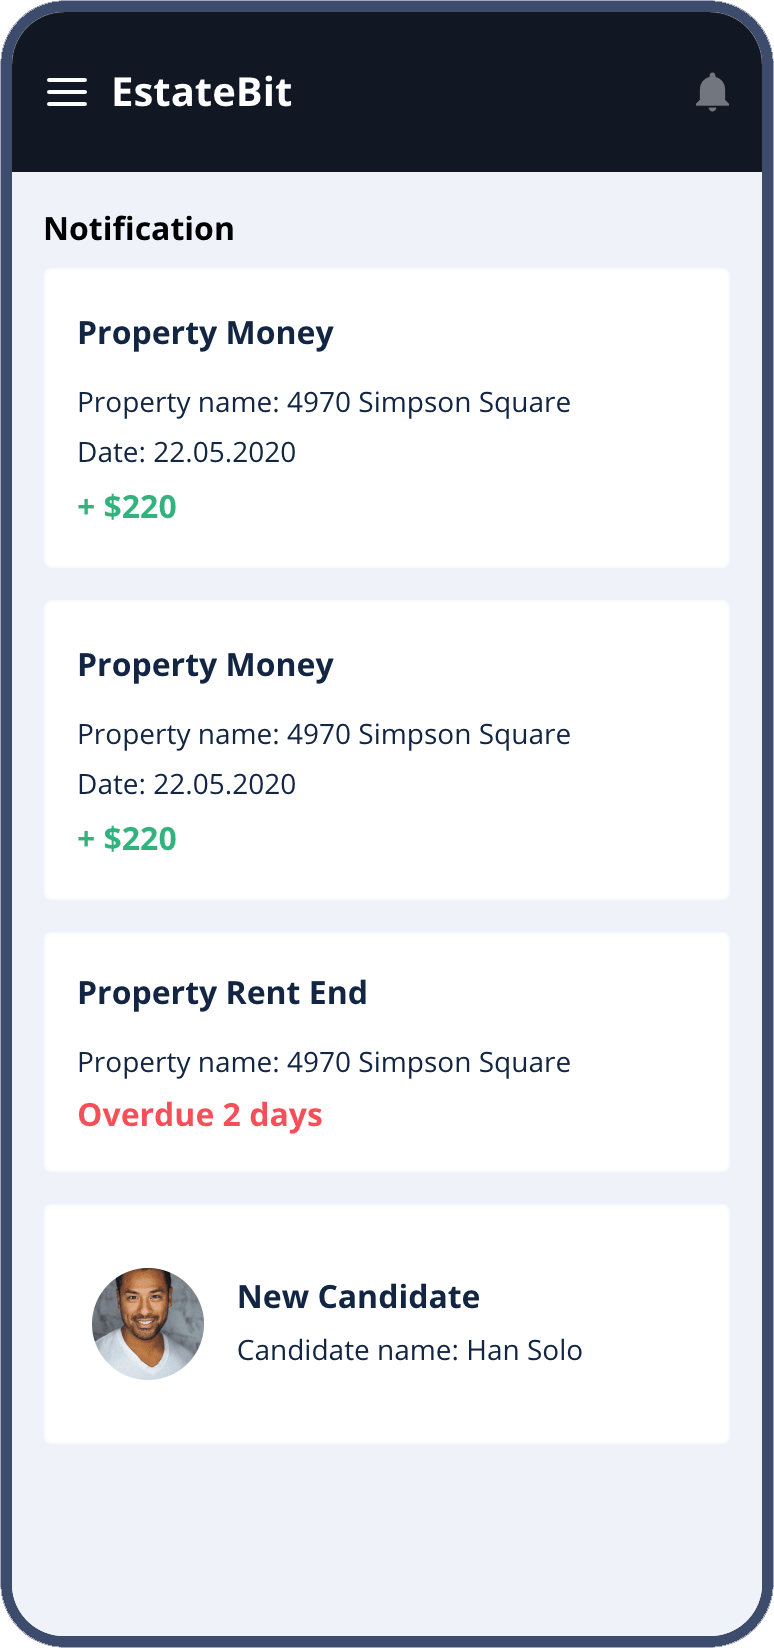 mobile app for real estate - notification